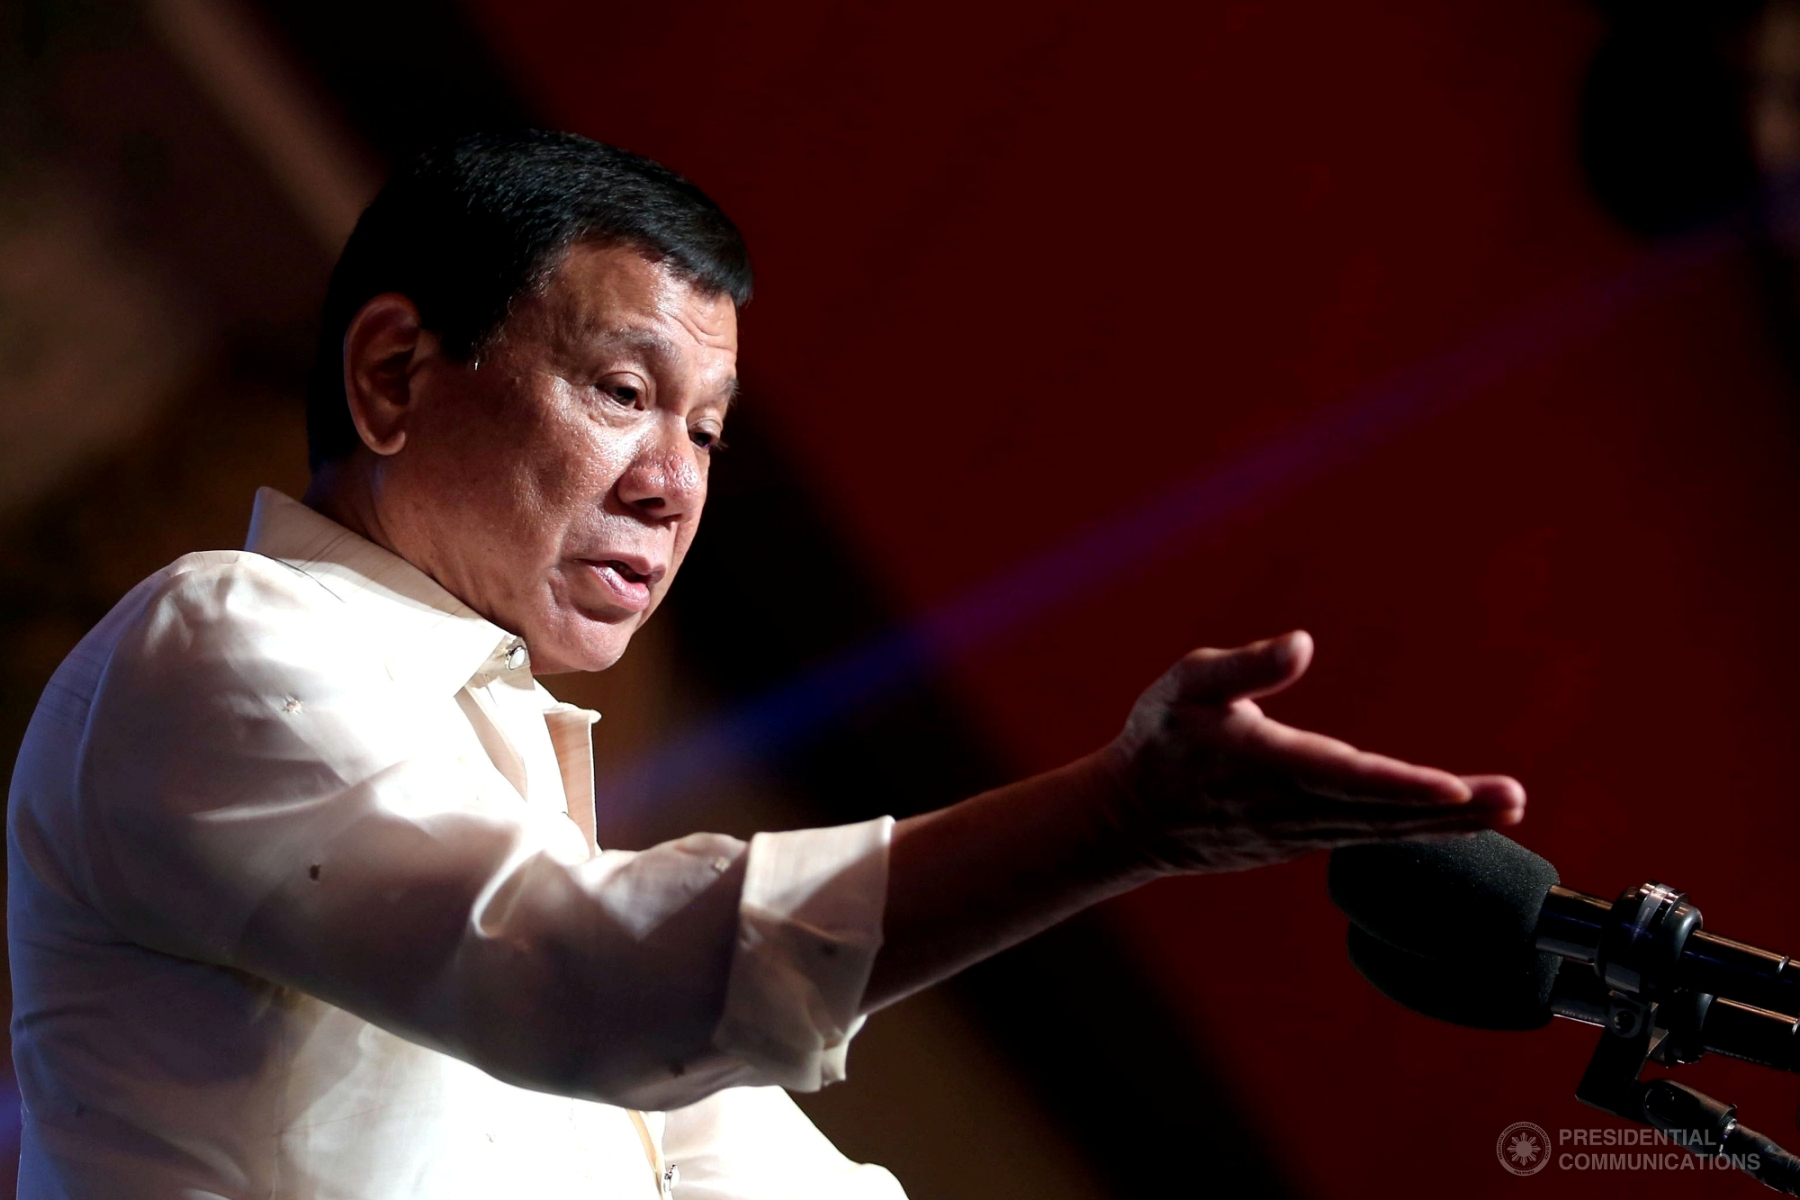 Malacañang on Wednesday stressed that an honorary degree from the University of the Philippines (UP) is not something that President Rodrigo Duterte would run after but said the President might accept the offer as a sign of goodwill. (Photo: ACE MORANDANTE/Presidential Photo)